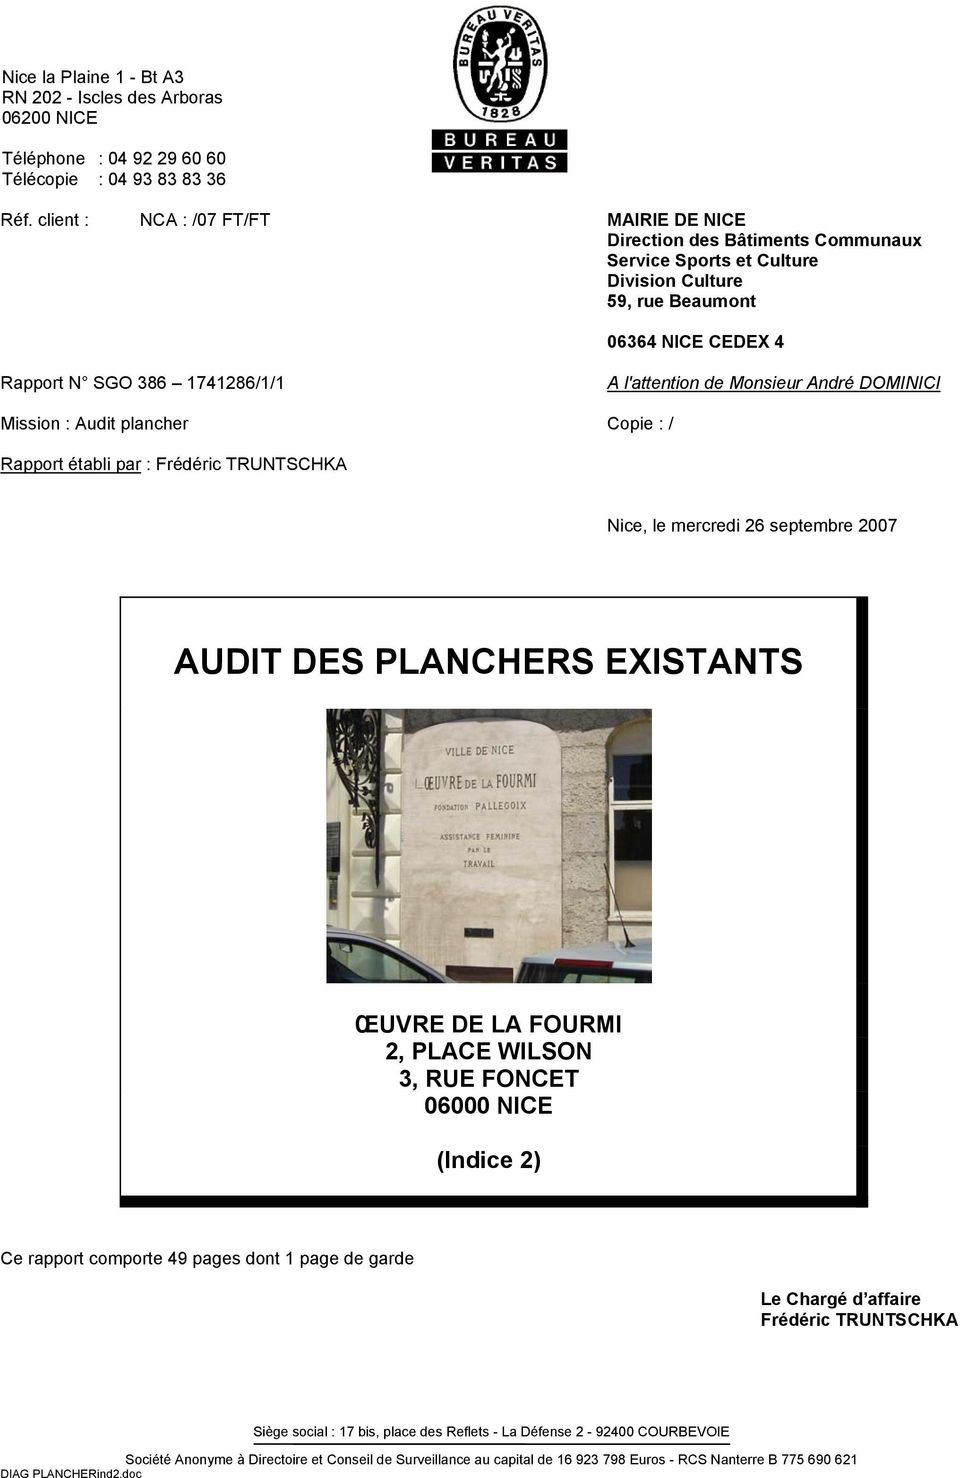 plancher A l'attention de Monsieur André DOMINICI Copie : / Rapport établi par : Frédéric TRUNTSCHKA Nice, le mercredi 26 septembre 2007 AUDIT DES PLANCHERS EXISTANTS ŒUVRE DE LA FOURMI 2, PLACE